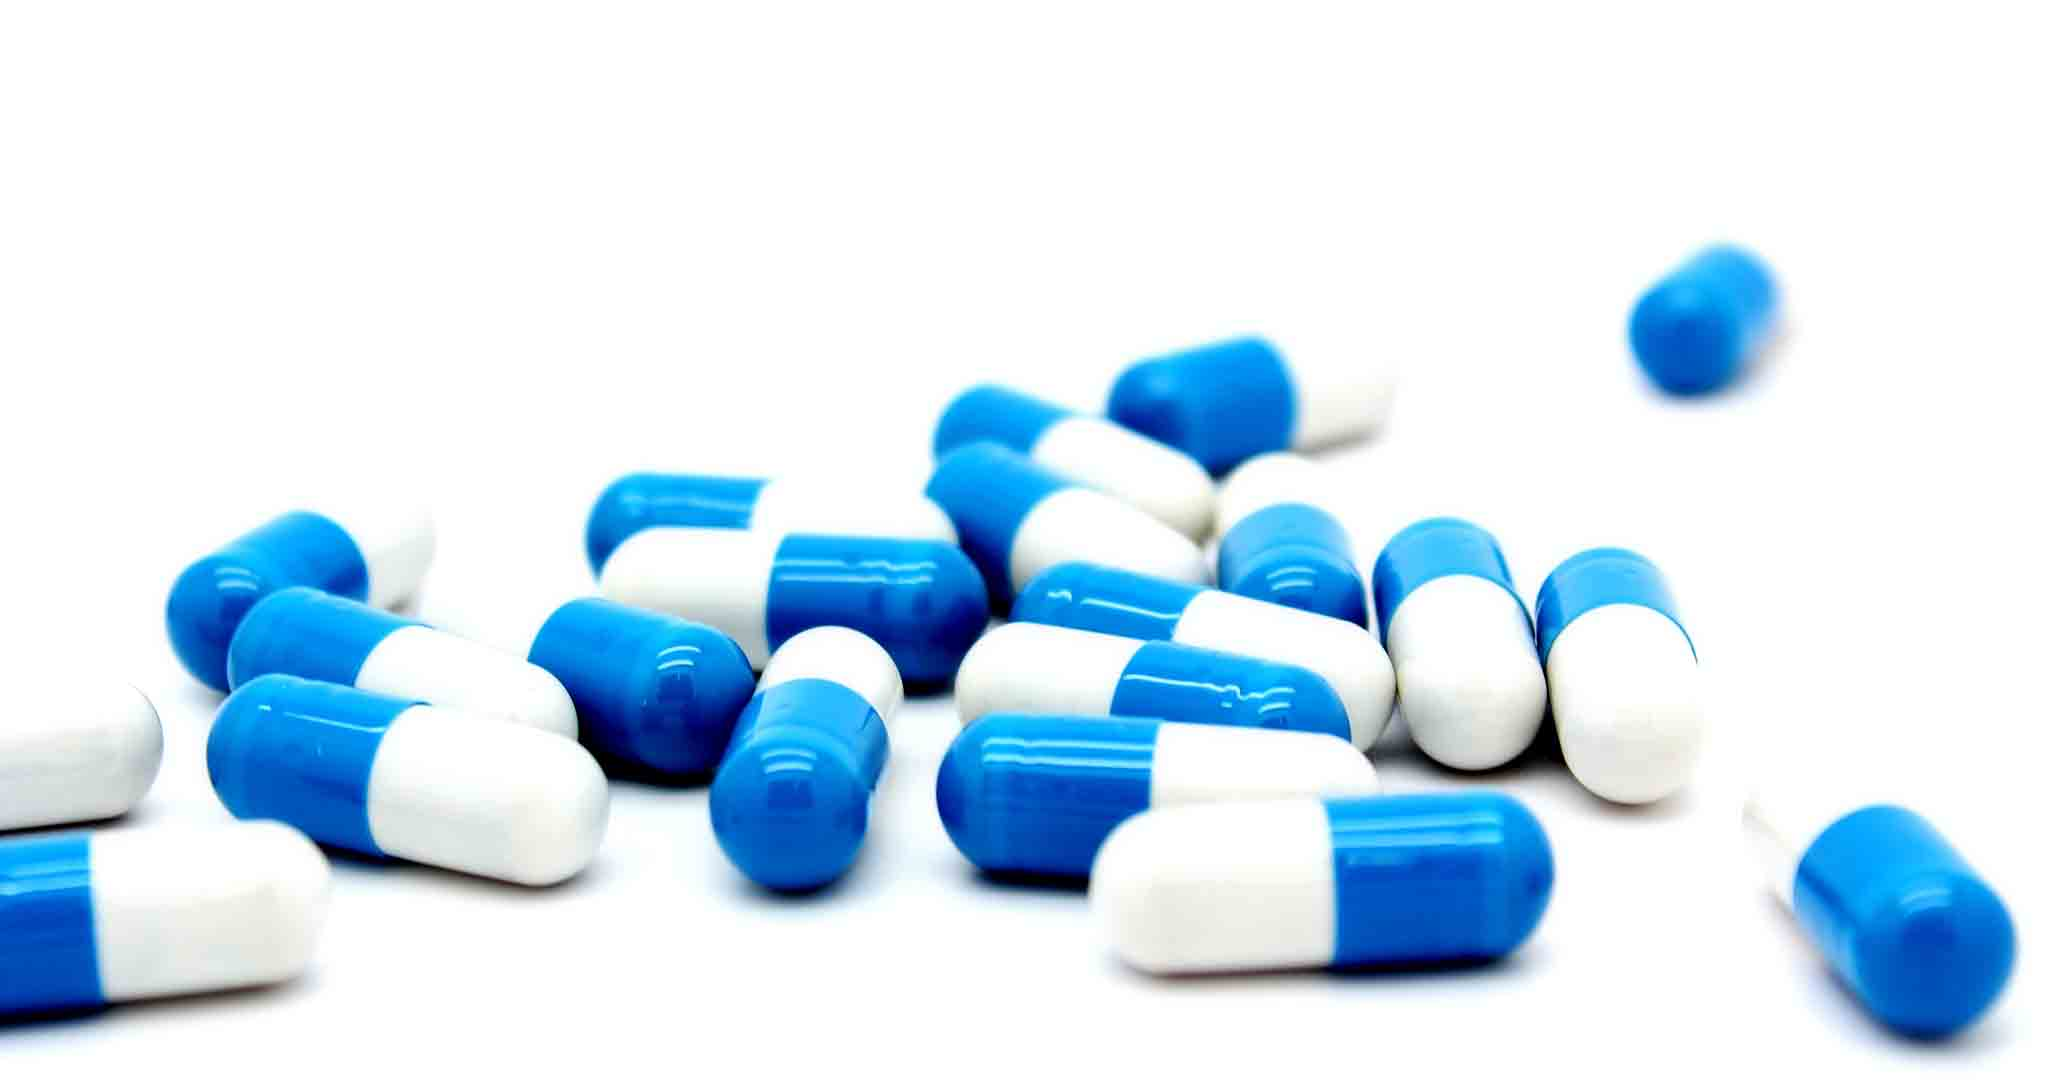 capsules cure drug health stock photography